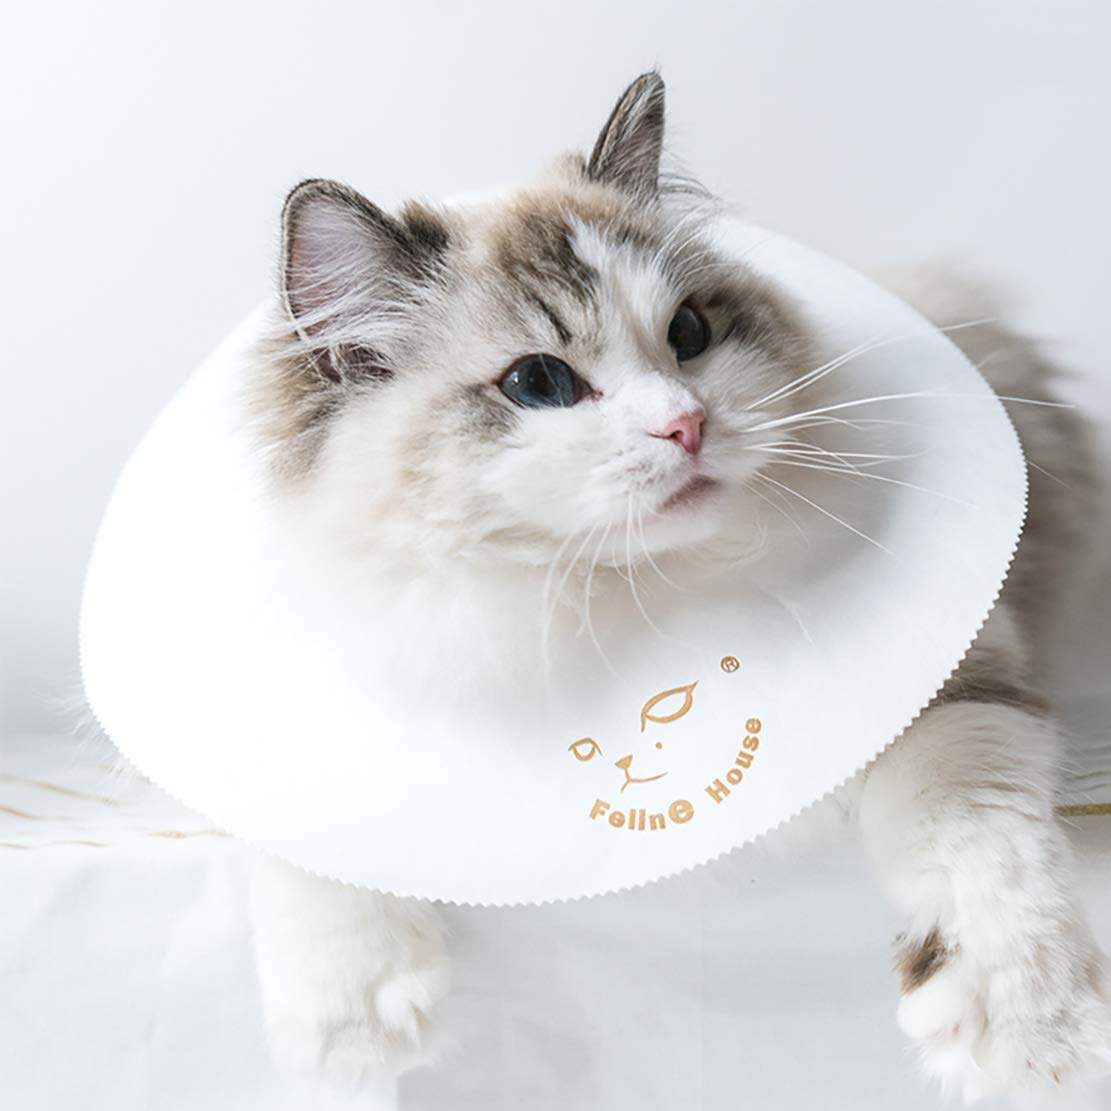 CAFILRA Pet Recovery E-Collar Cones (10 Pack) for Cats & Small Dogs After Surgery,Comfy Soft Elizabethan Kitten Neck Cone of Shame,Puppy Head Medical Collar,DIY to Prevent Licking Wounds & Rashes (L) by CAFILRA